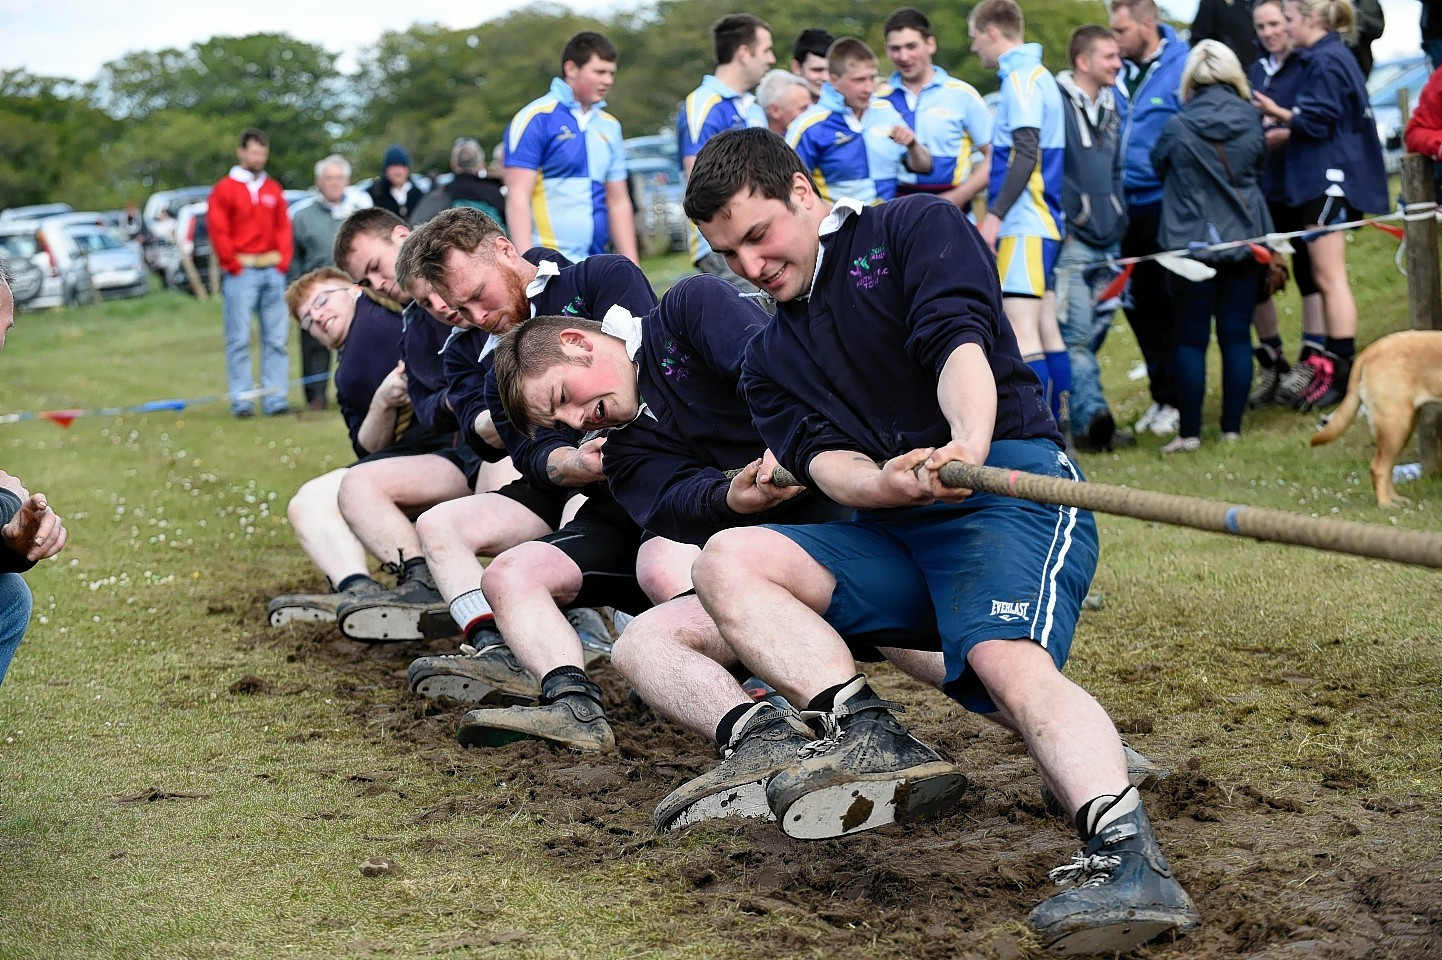 Cornhill Highland Games could fold if new staff are not found